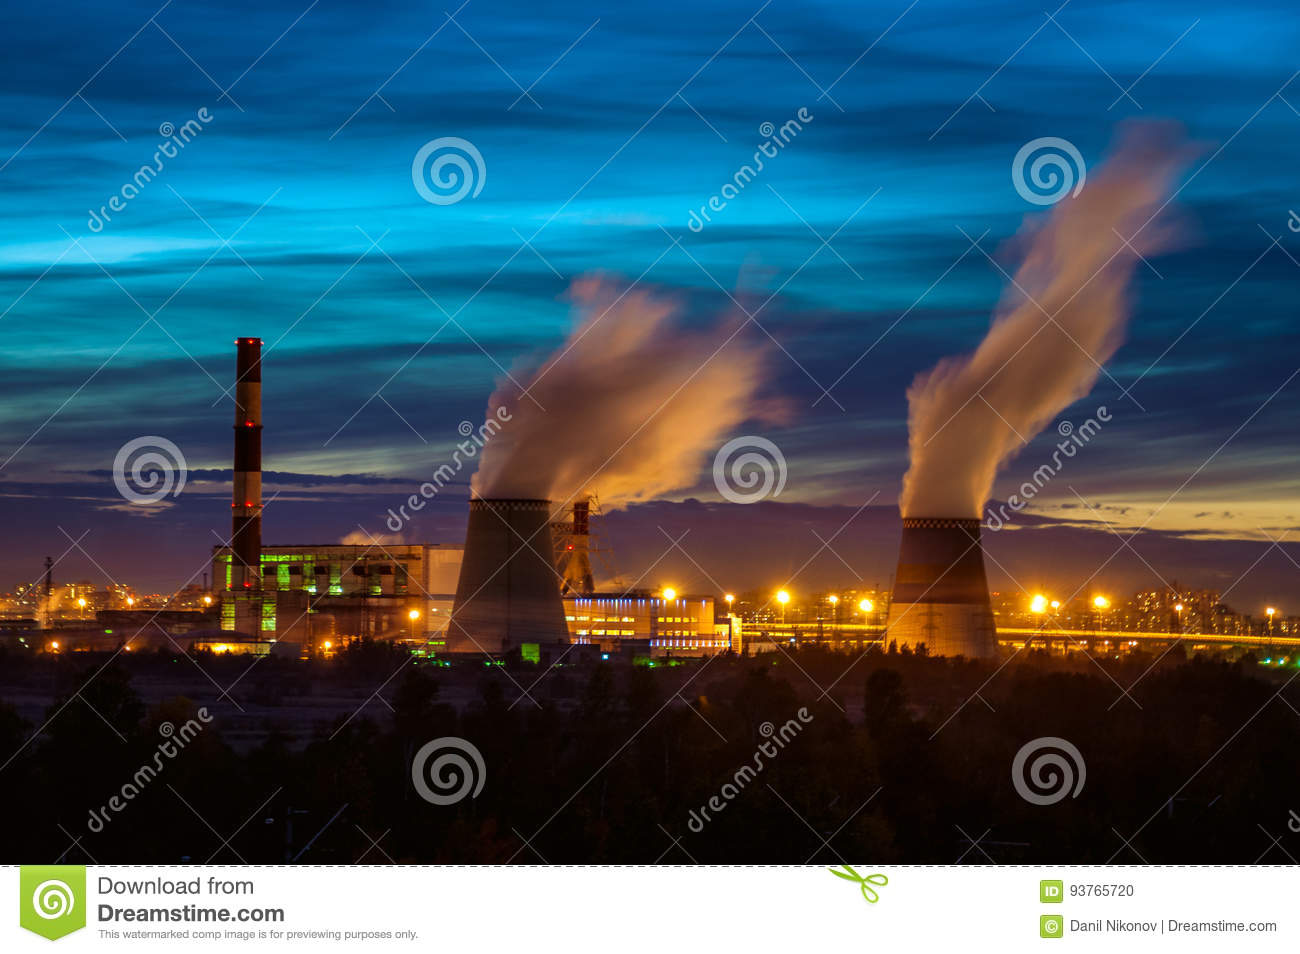 Factories at night, the silhouettes of the pipe producing a noxious smoke into the sky..